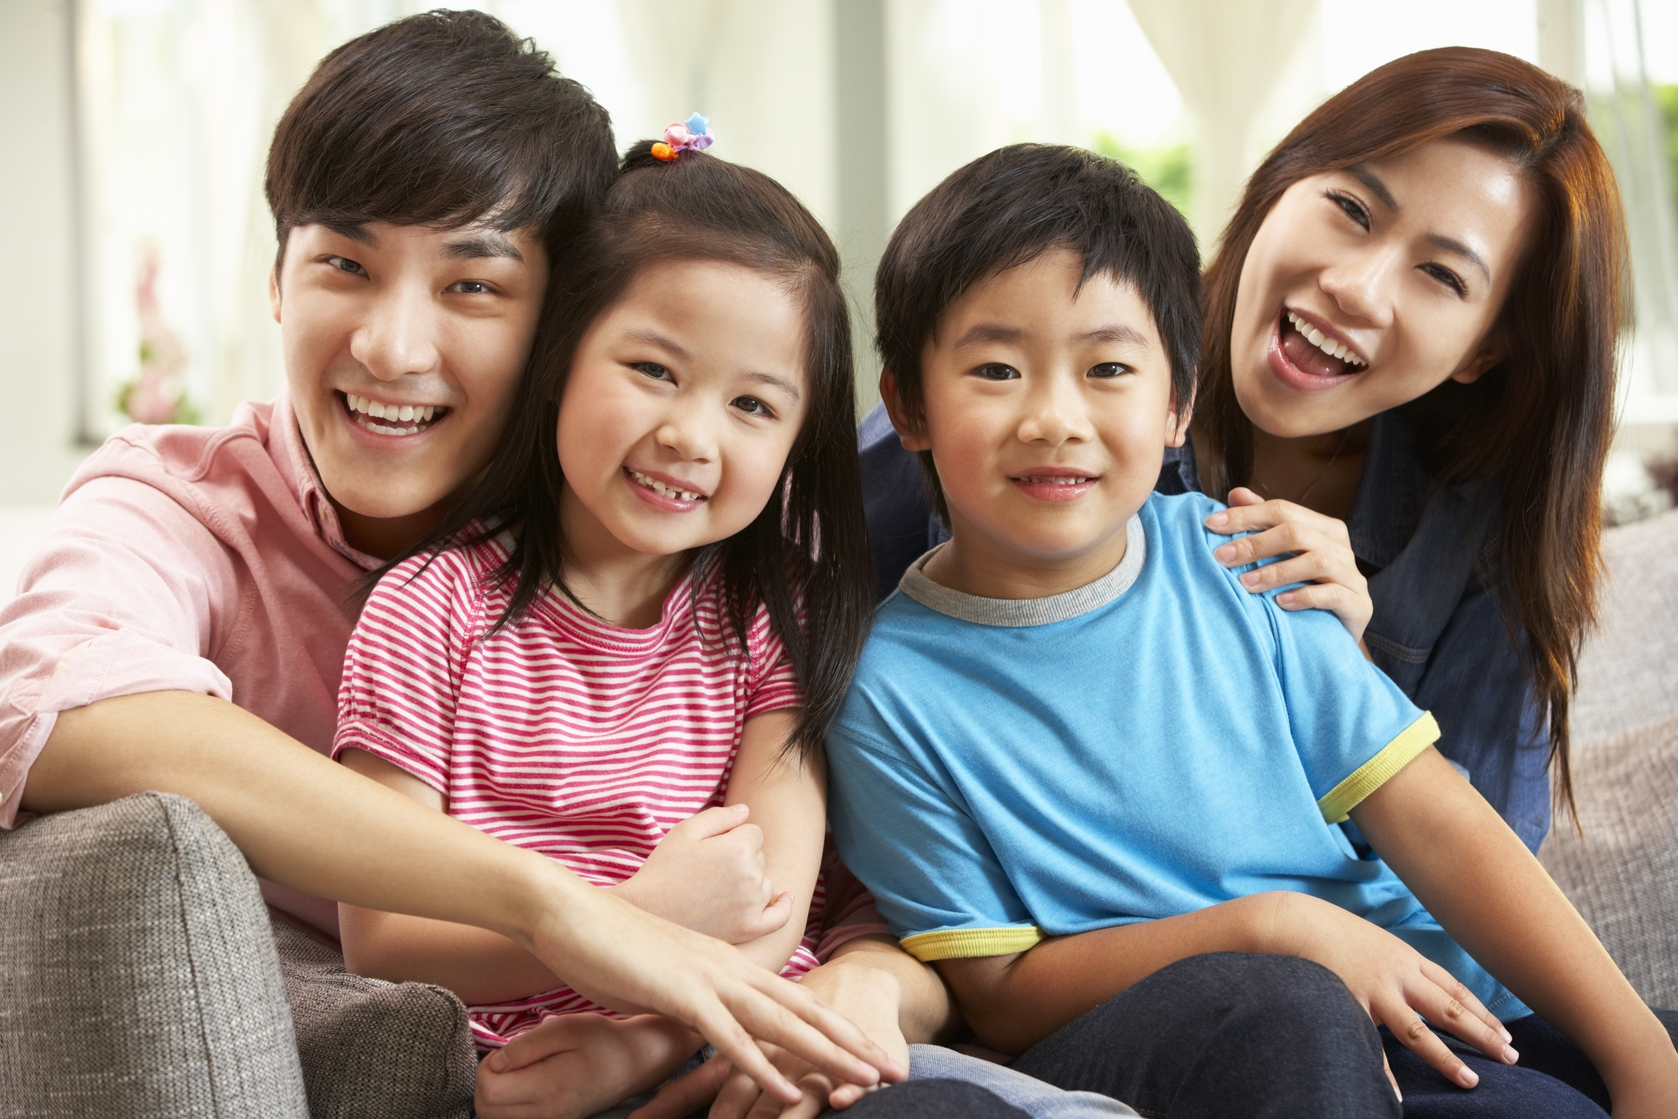 We put families first! Ask about our Family Rewards Program. We extend a 5% discount to patients family members for future orthodontics.